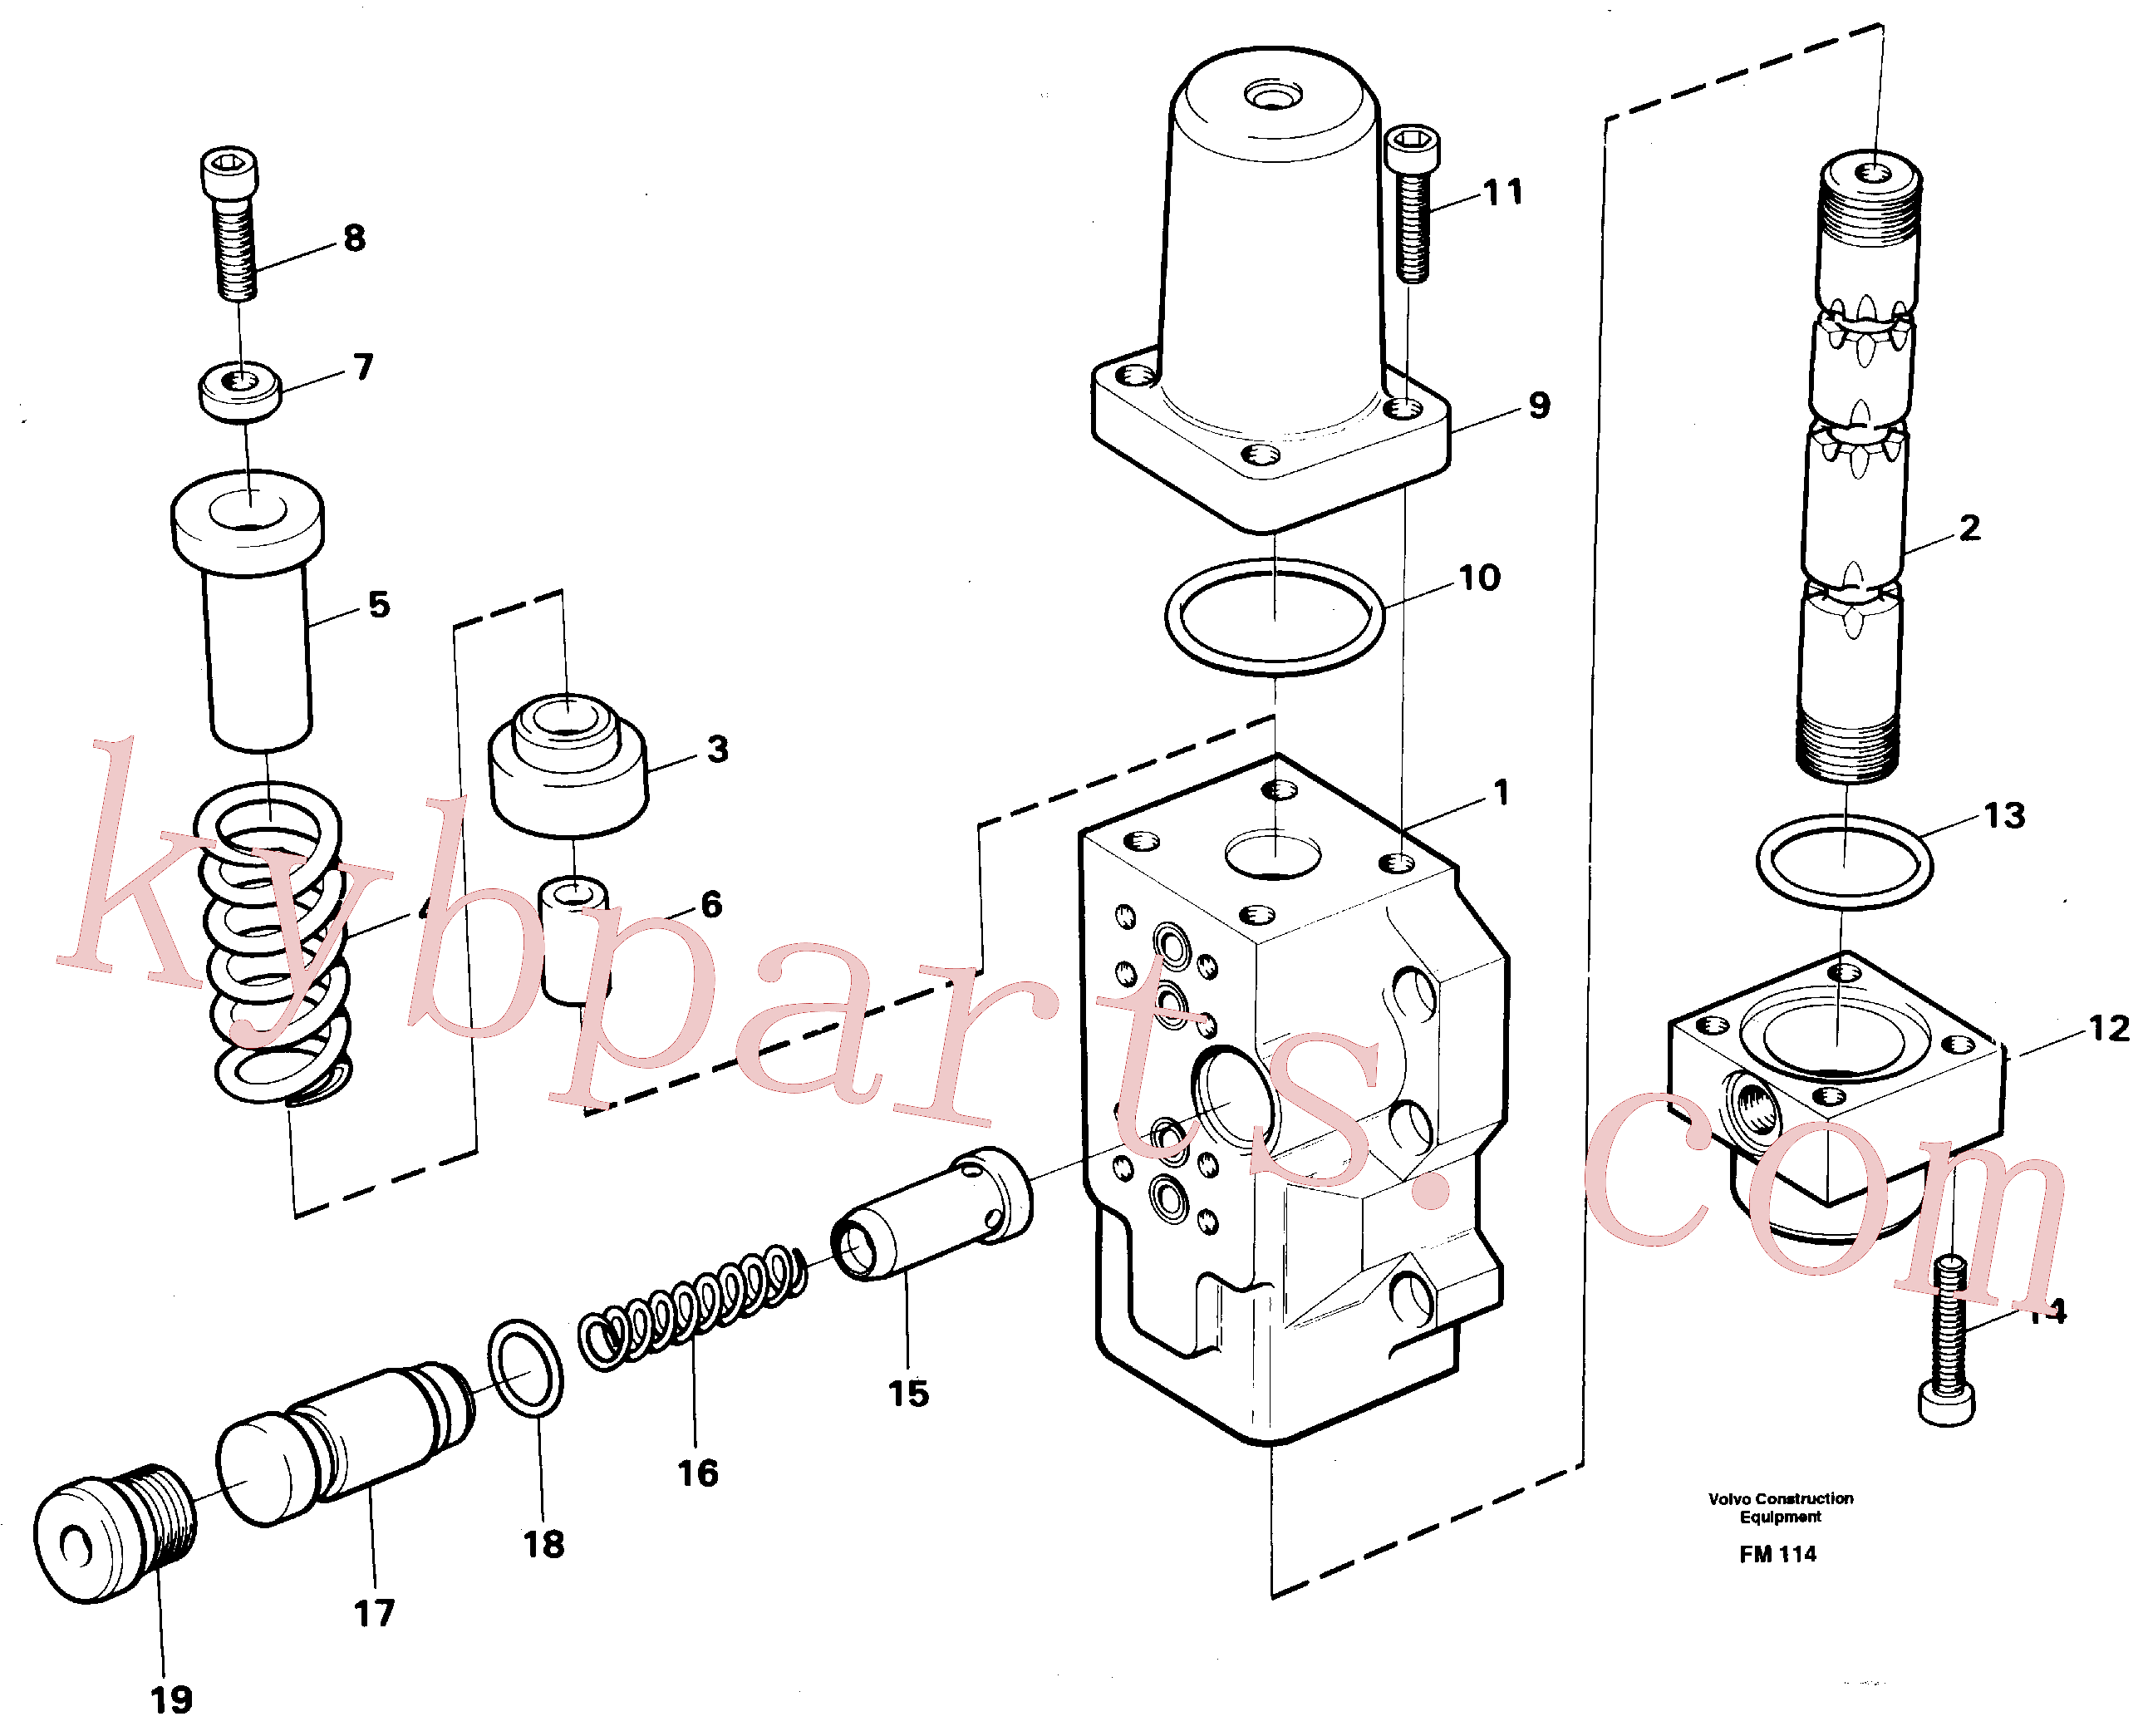 VOE14012817 for Volvo Fourway valve, boom secondary(FM114 assembly)